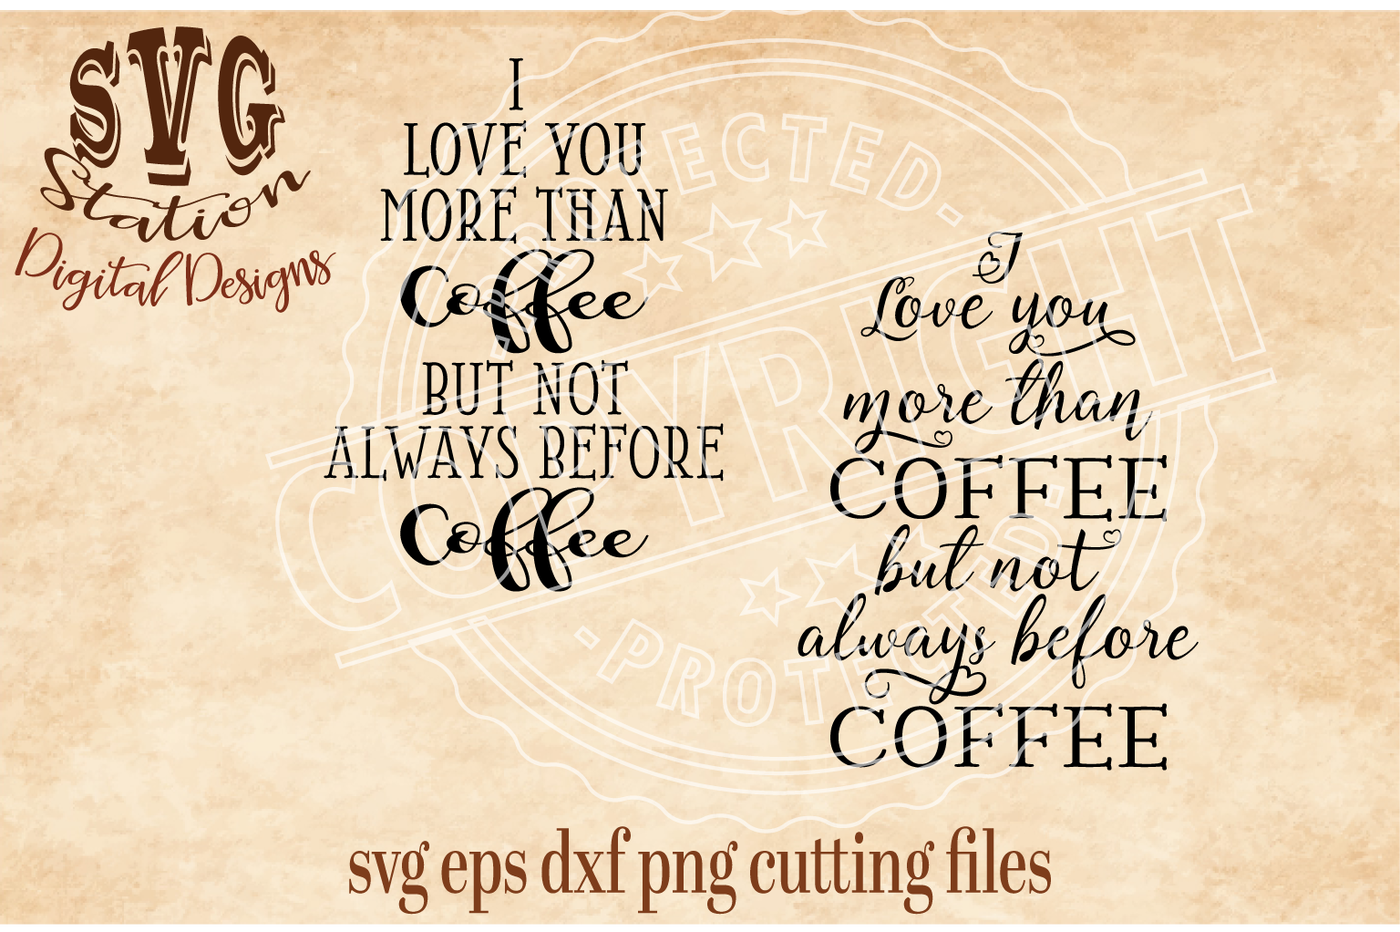 I Love You More Than Coffee Svg Dxf Png Eps Cutting File